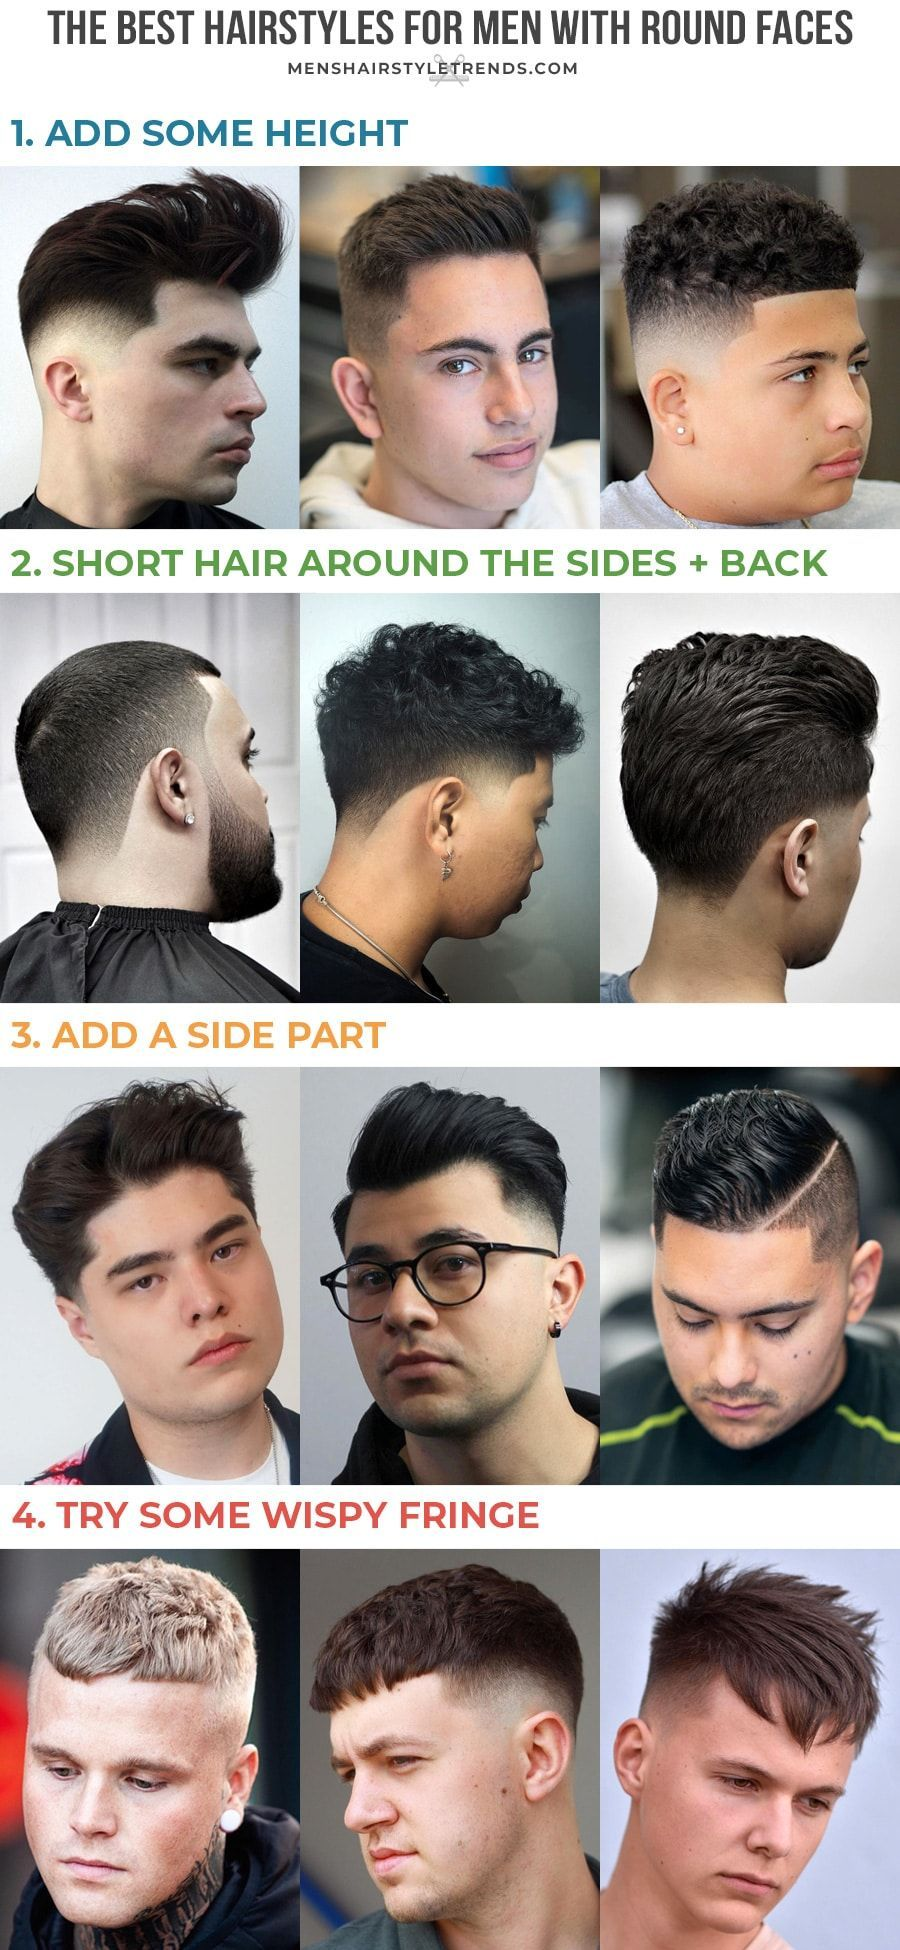 Best Hairstyles For Round Faces For Men Best Hairstyles Round Face Men Hairstyles For Round Faces Cool Hairstyles